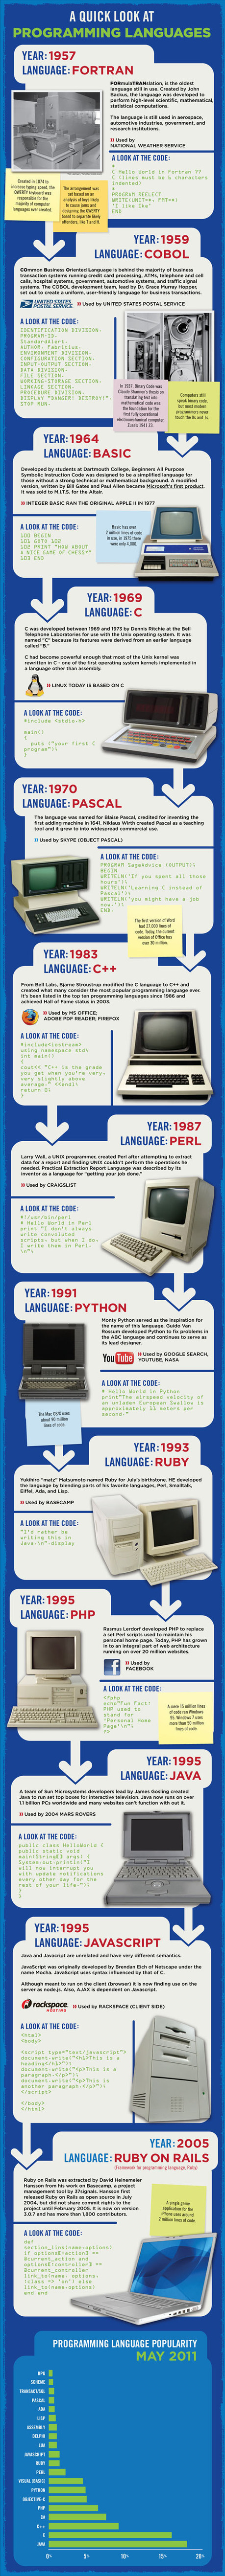 The History Of Computer Languages | tecno4 | Scoop.it